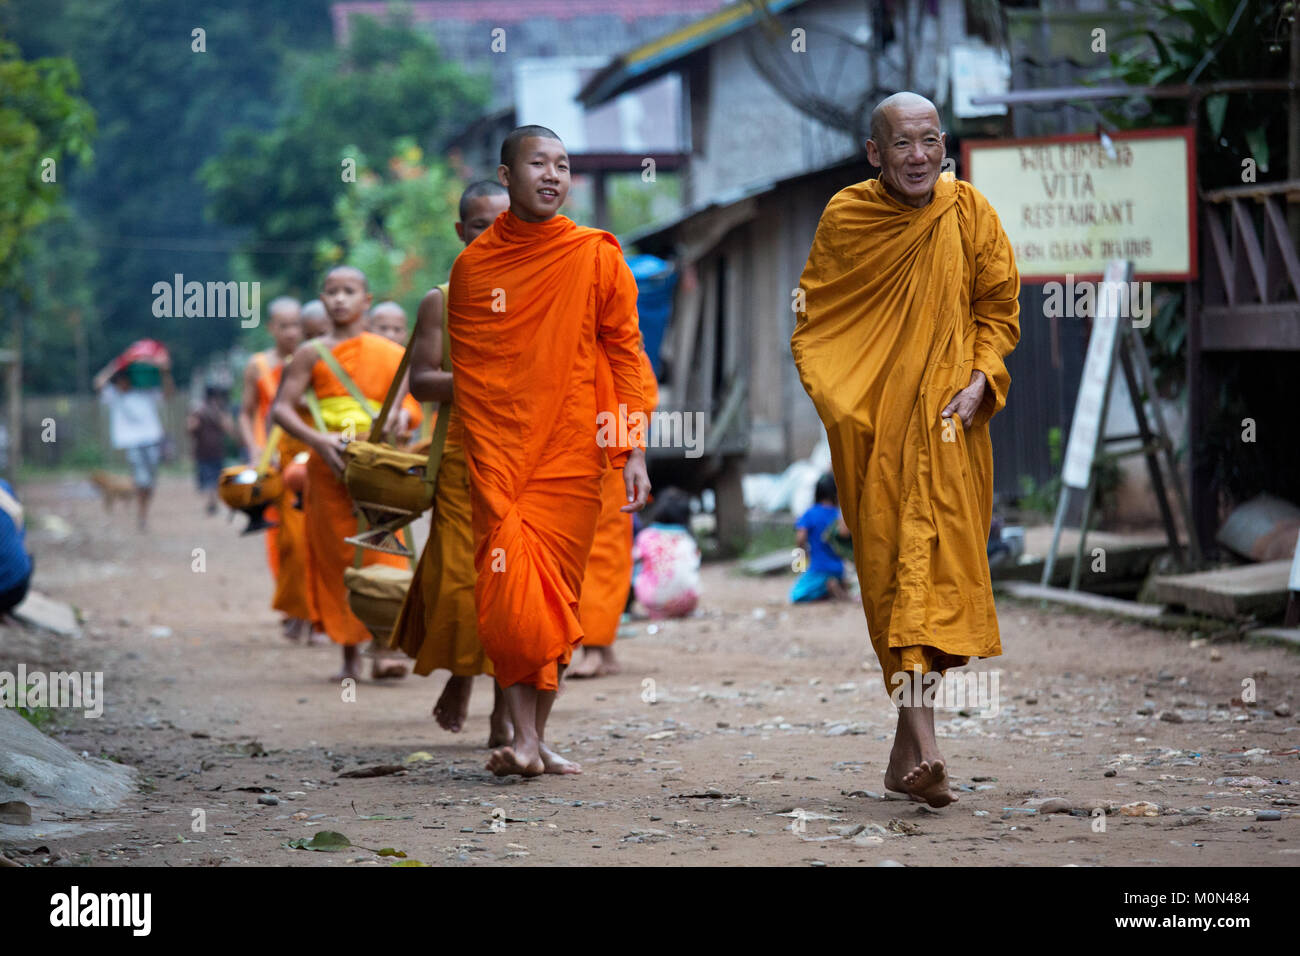 Monks walking back to Temple after collecting alms in the early morning in Muang Ngoi, Northern Laos - Stock Image